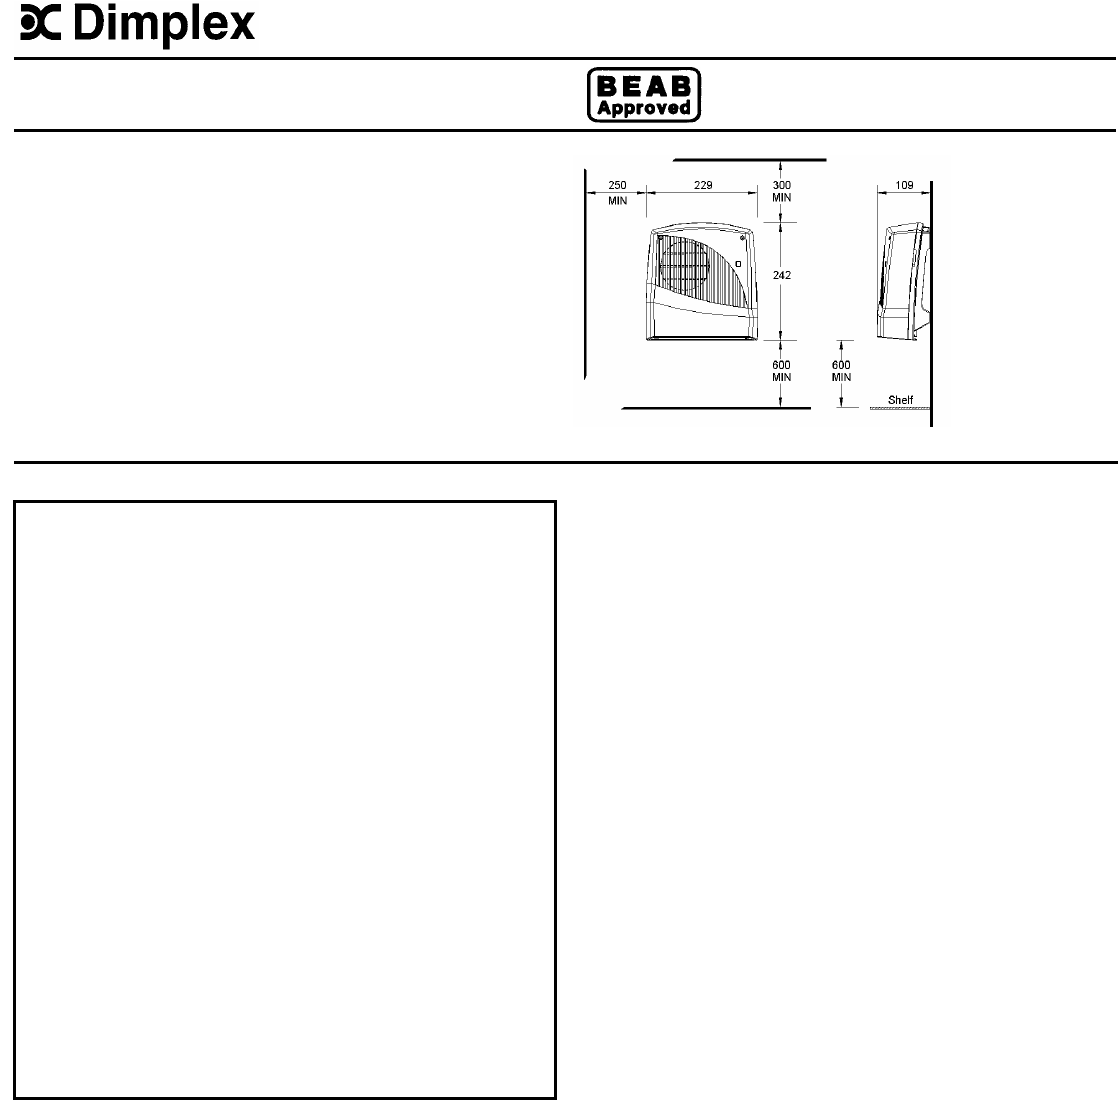 Dimplex Fan Fx 20vl User Guide Manualsonline Com border=